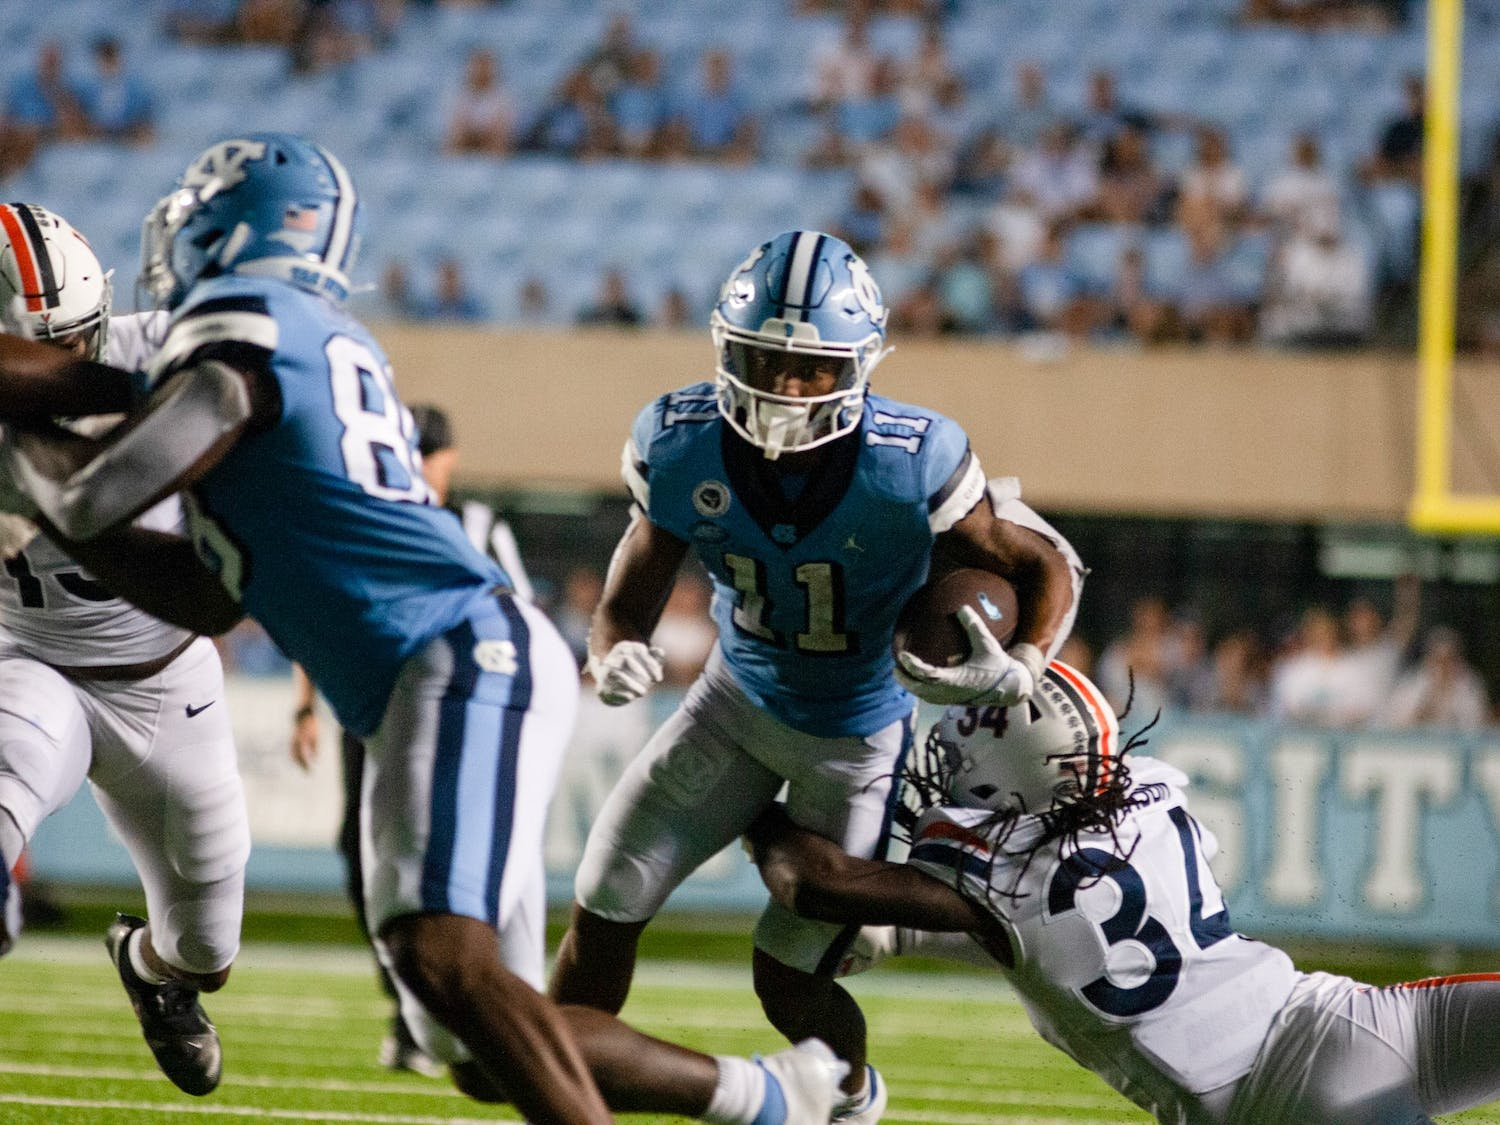 UNC sophomore wide receiver Josh Downs (11) rushes the ball down the field in the first quarter against the University of Virginia. UNC defeated the Cavaliers 59-39, their second win of the season.